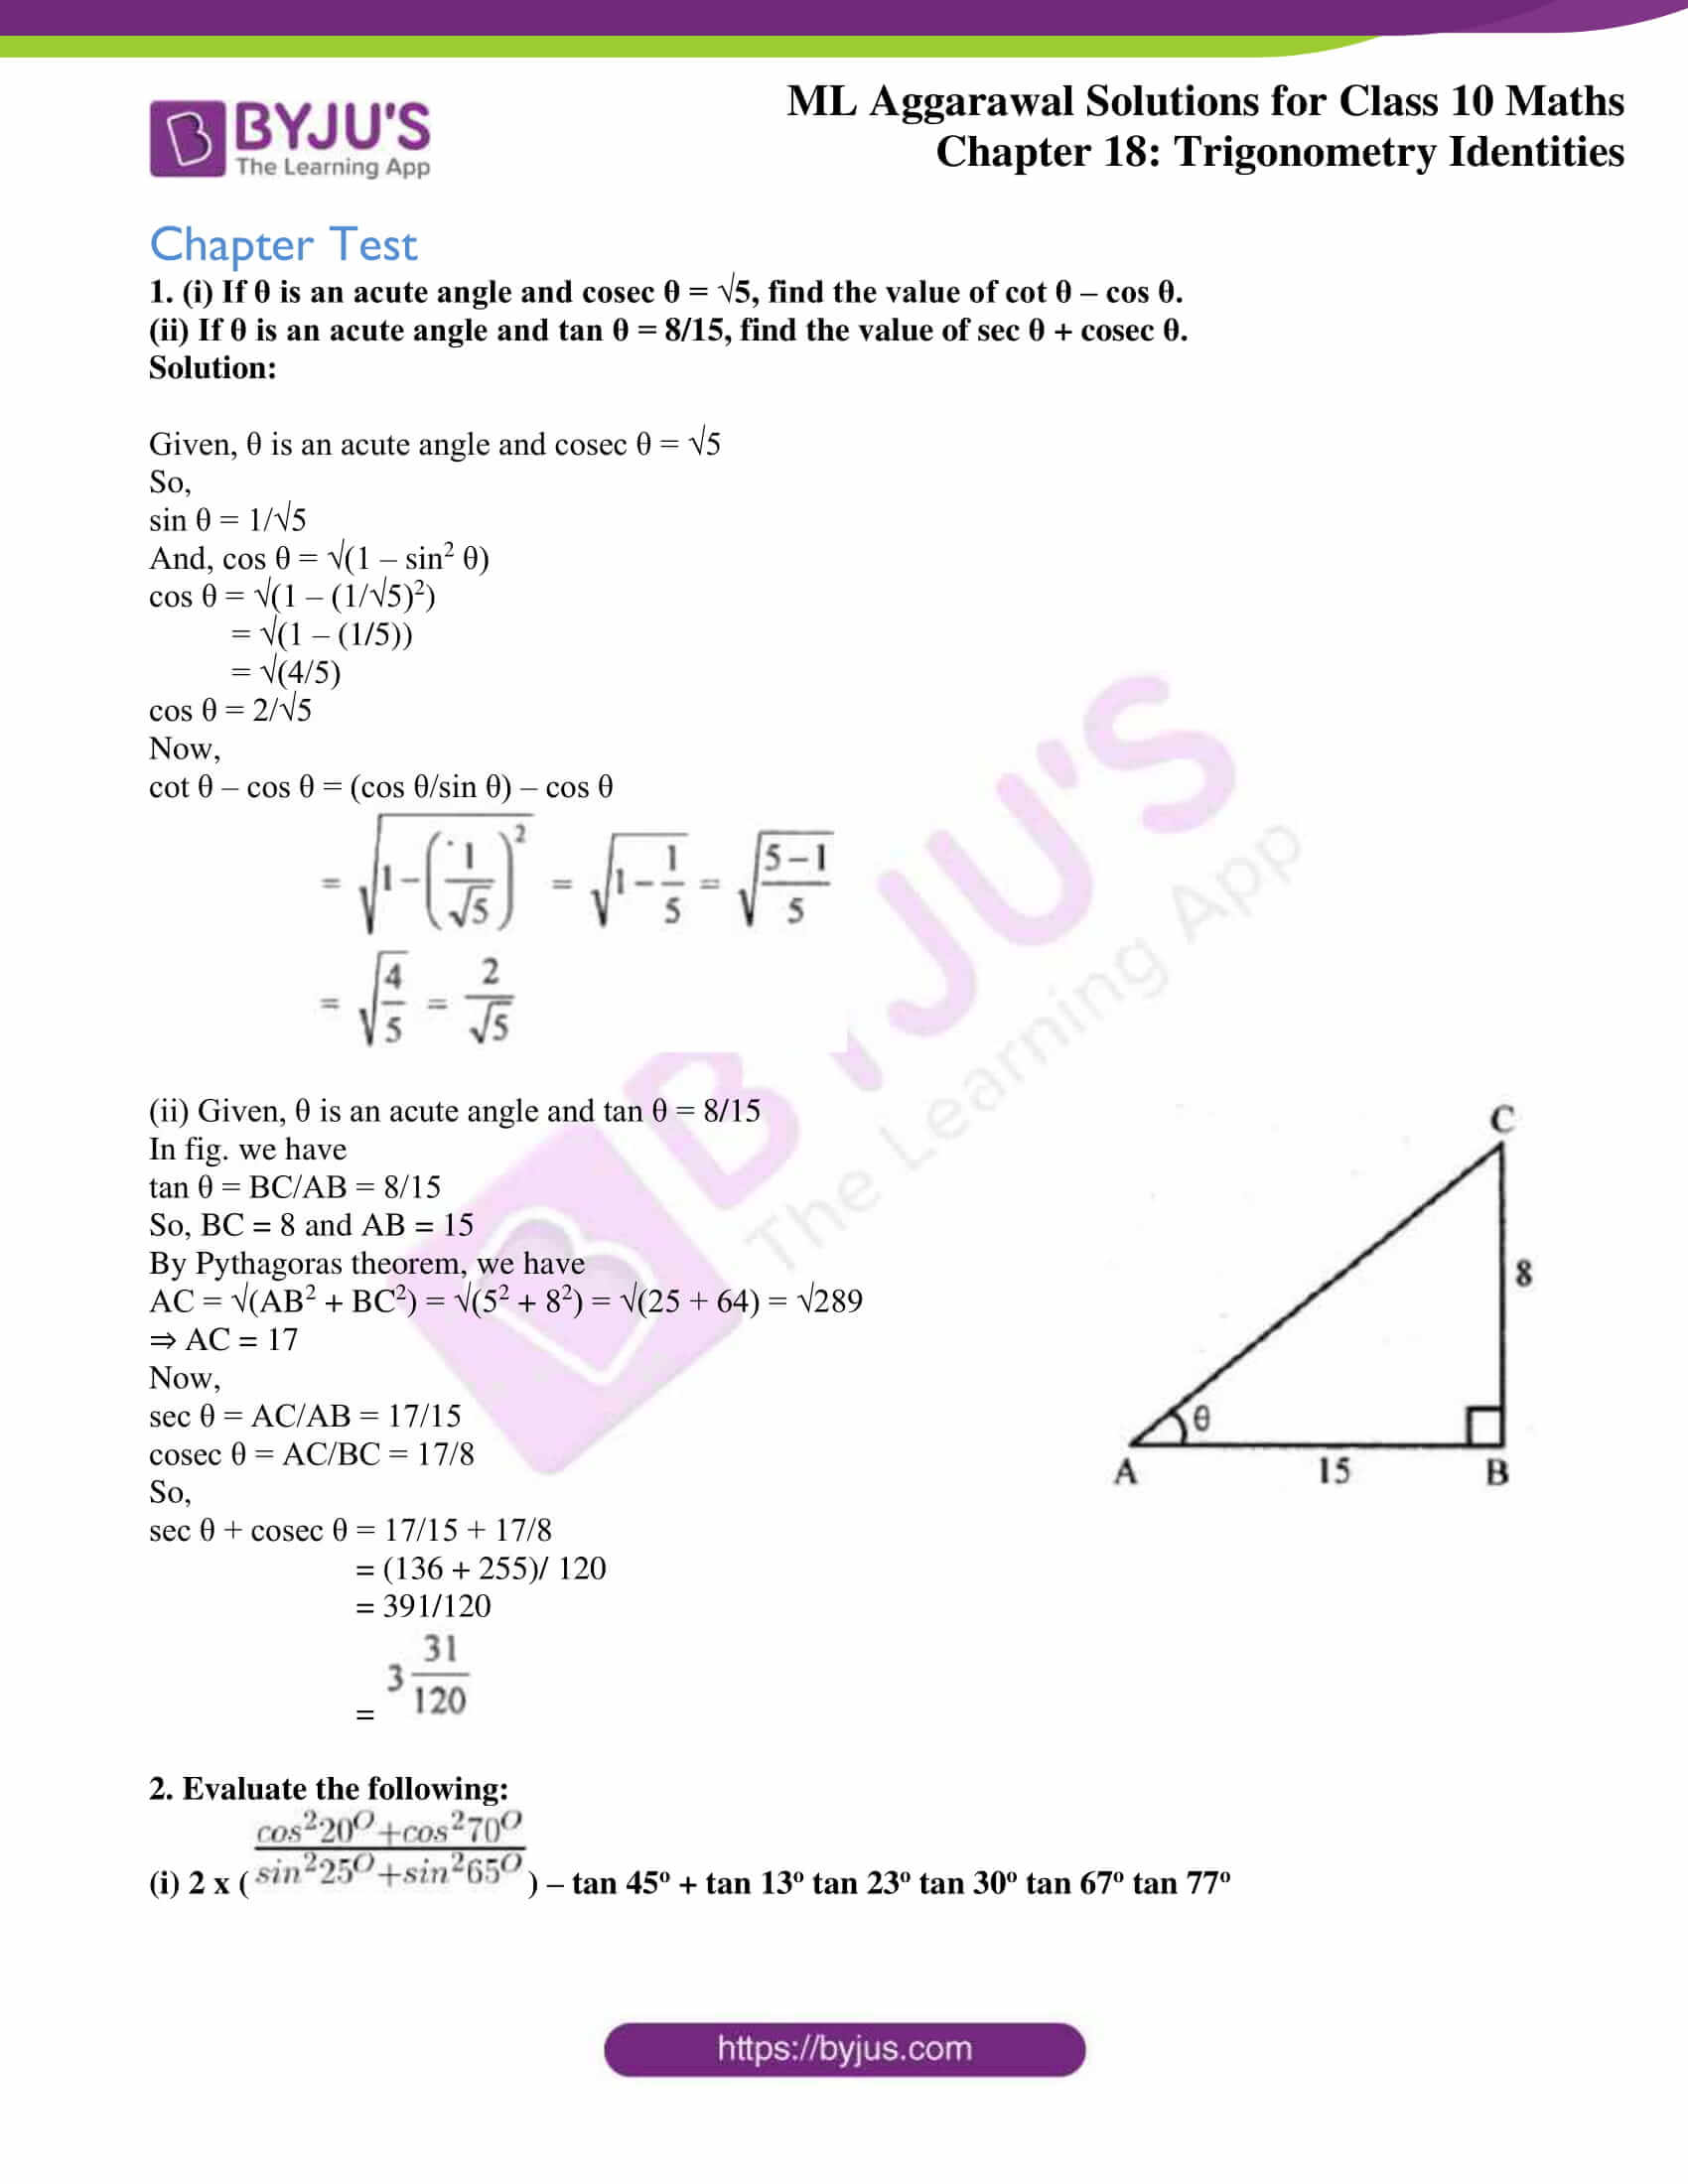 ml aggarwal solutions for class 10 maths chapter 18 27